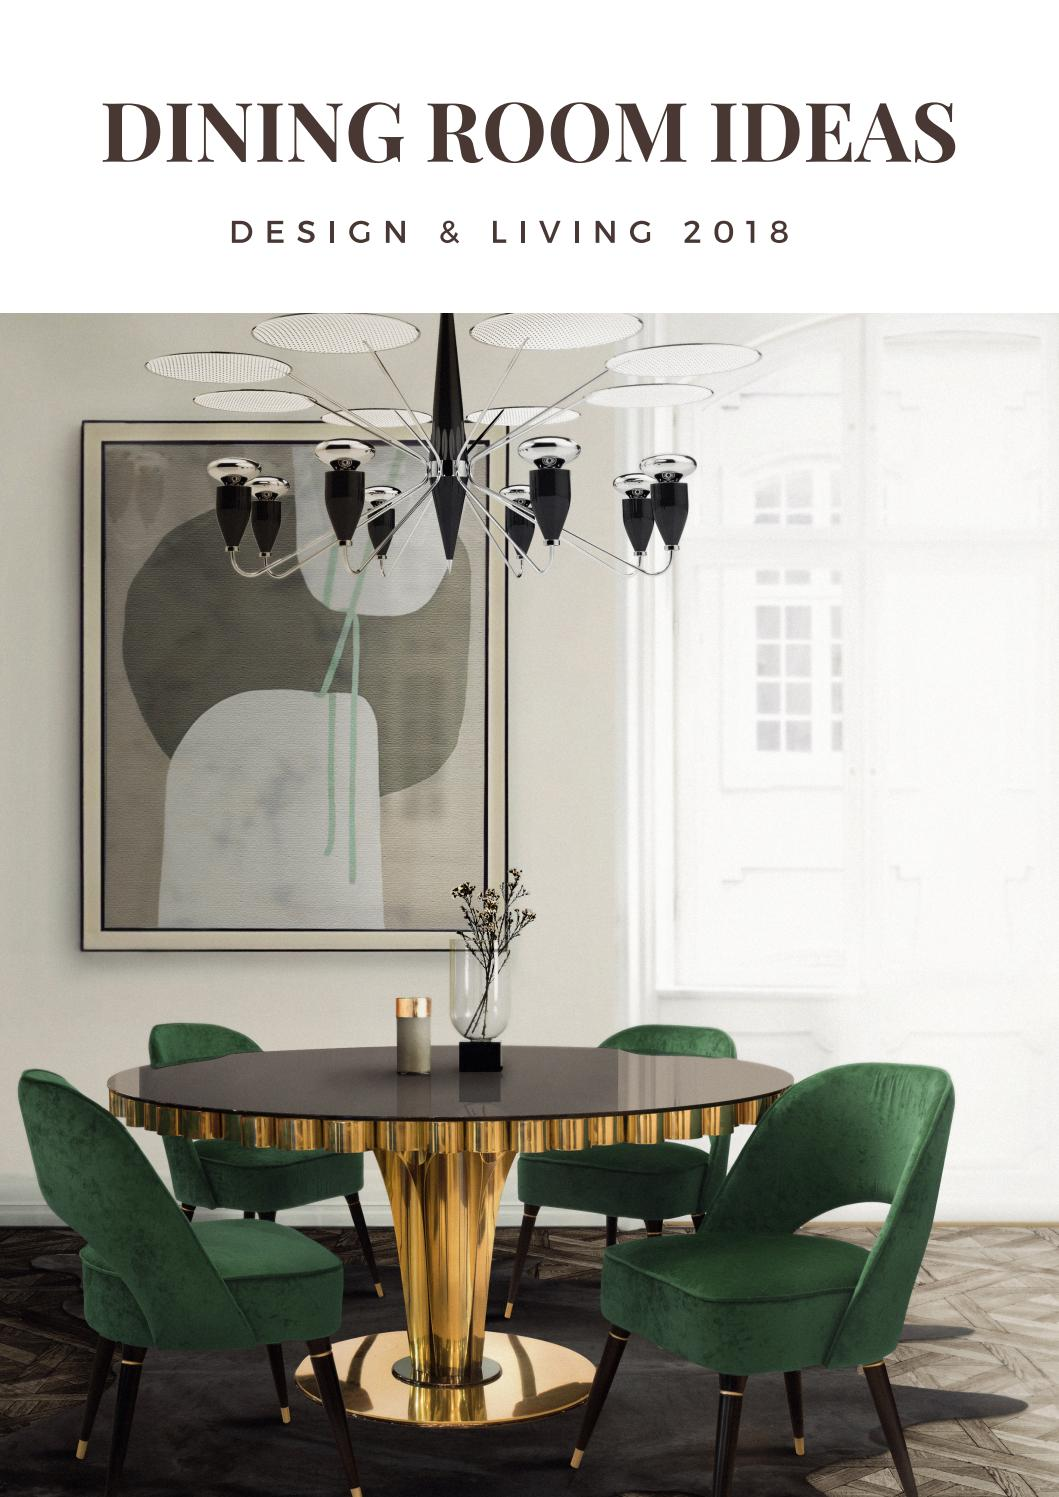 Dining room ideas design living 2018 by home living for Dining room 95 hai ba trung